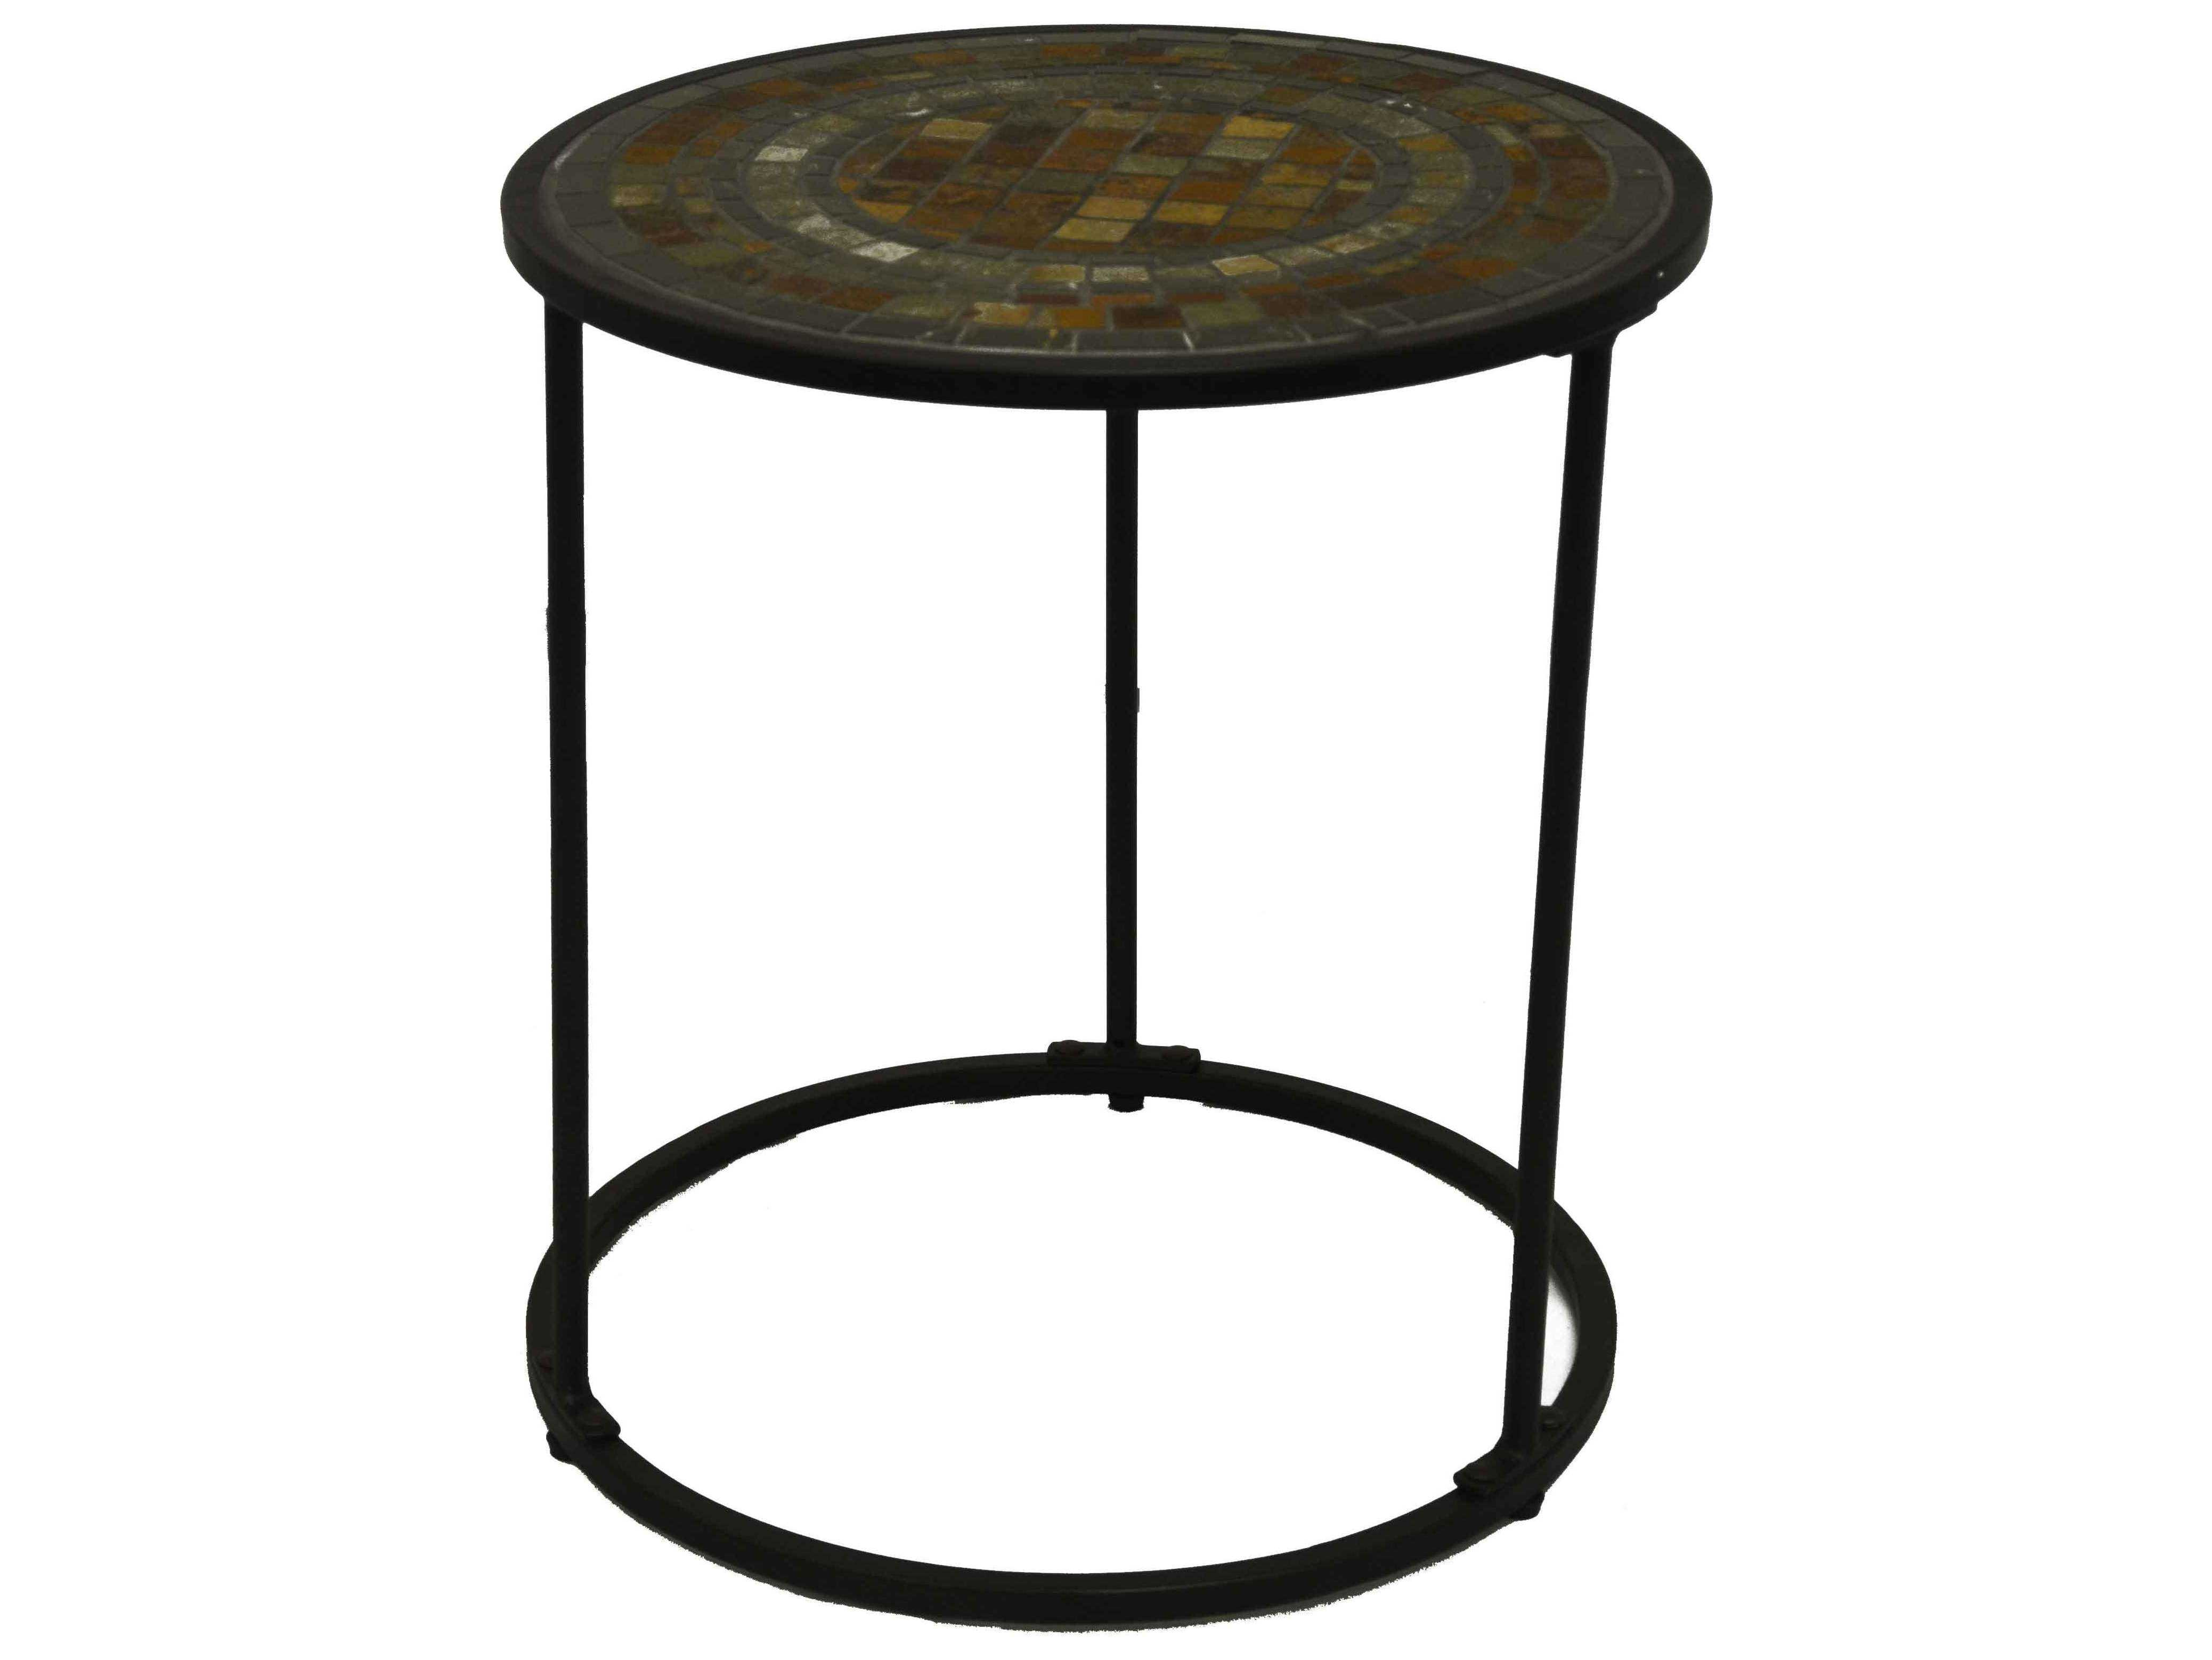 paragon casual odessa wrought iron round wineberry accent table black oval coffee west elm dining owings console shelf espresso nesting cocktail set floor separator timber trestle